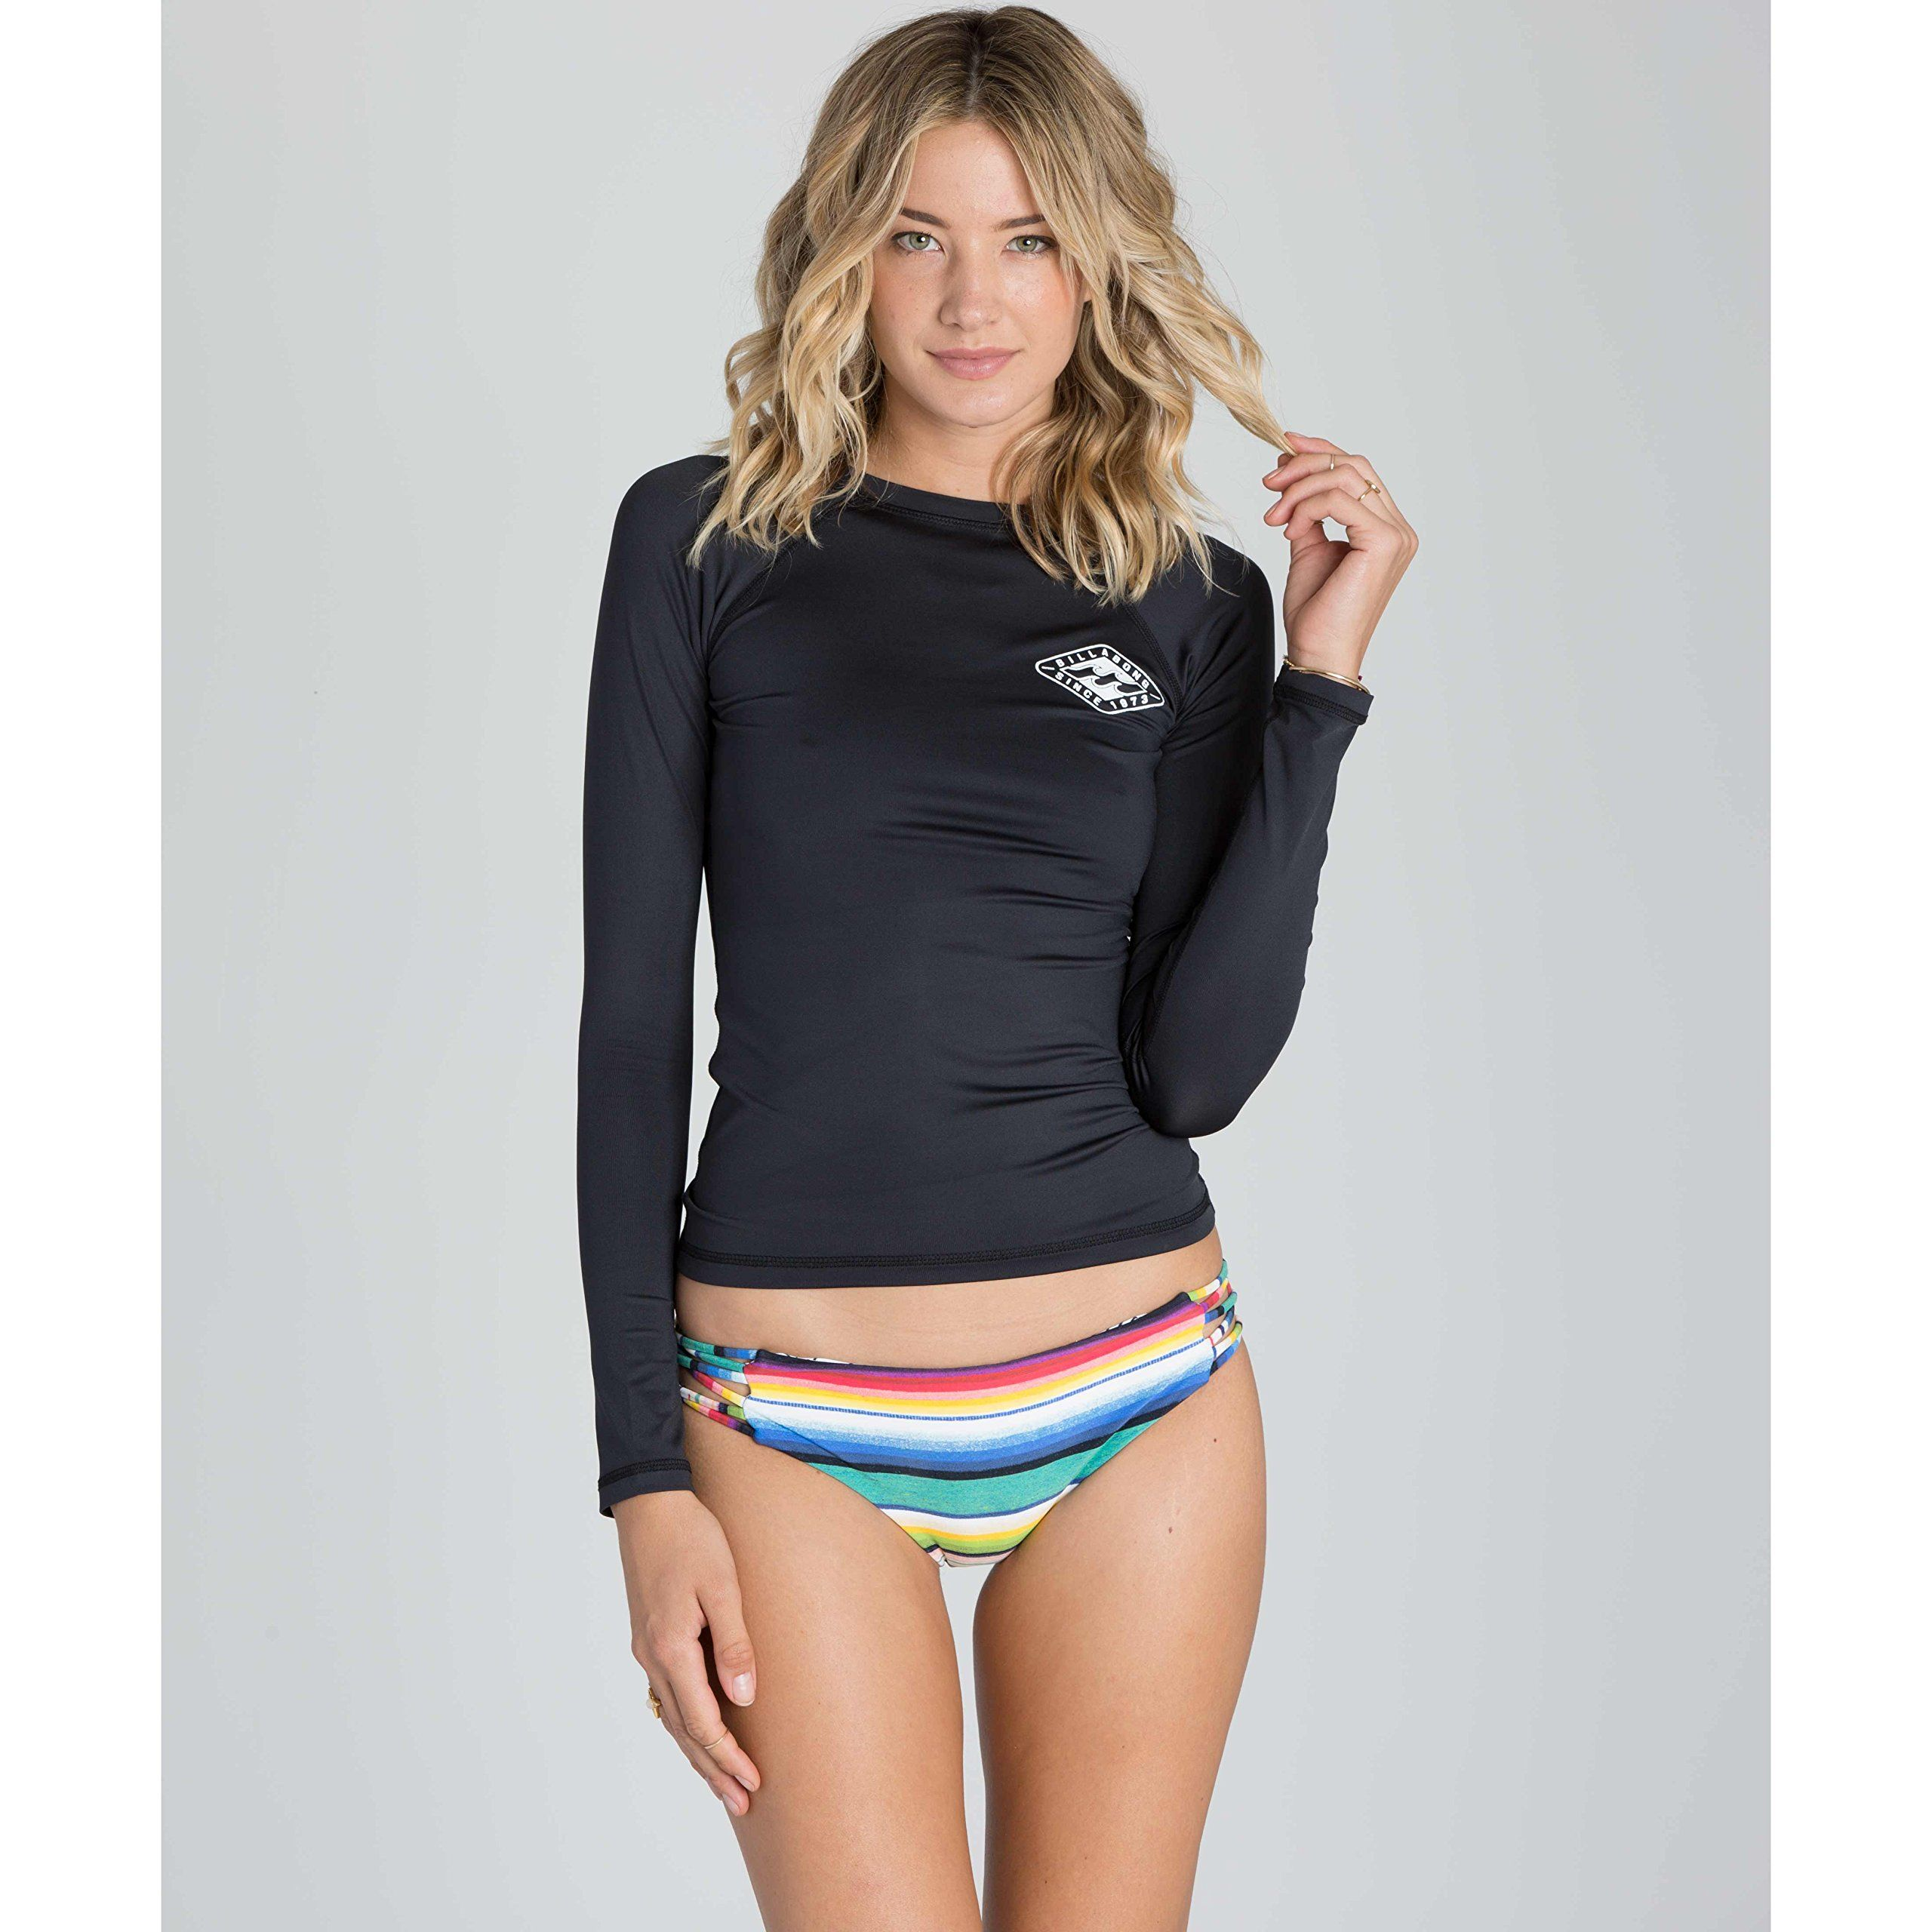 105d6f757aac5 canoeing - Billabong Womens Sol Searcher Long Sleeve Rashguard Black Sands  Medium. Extra details might be discovered at the image url.